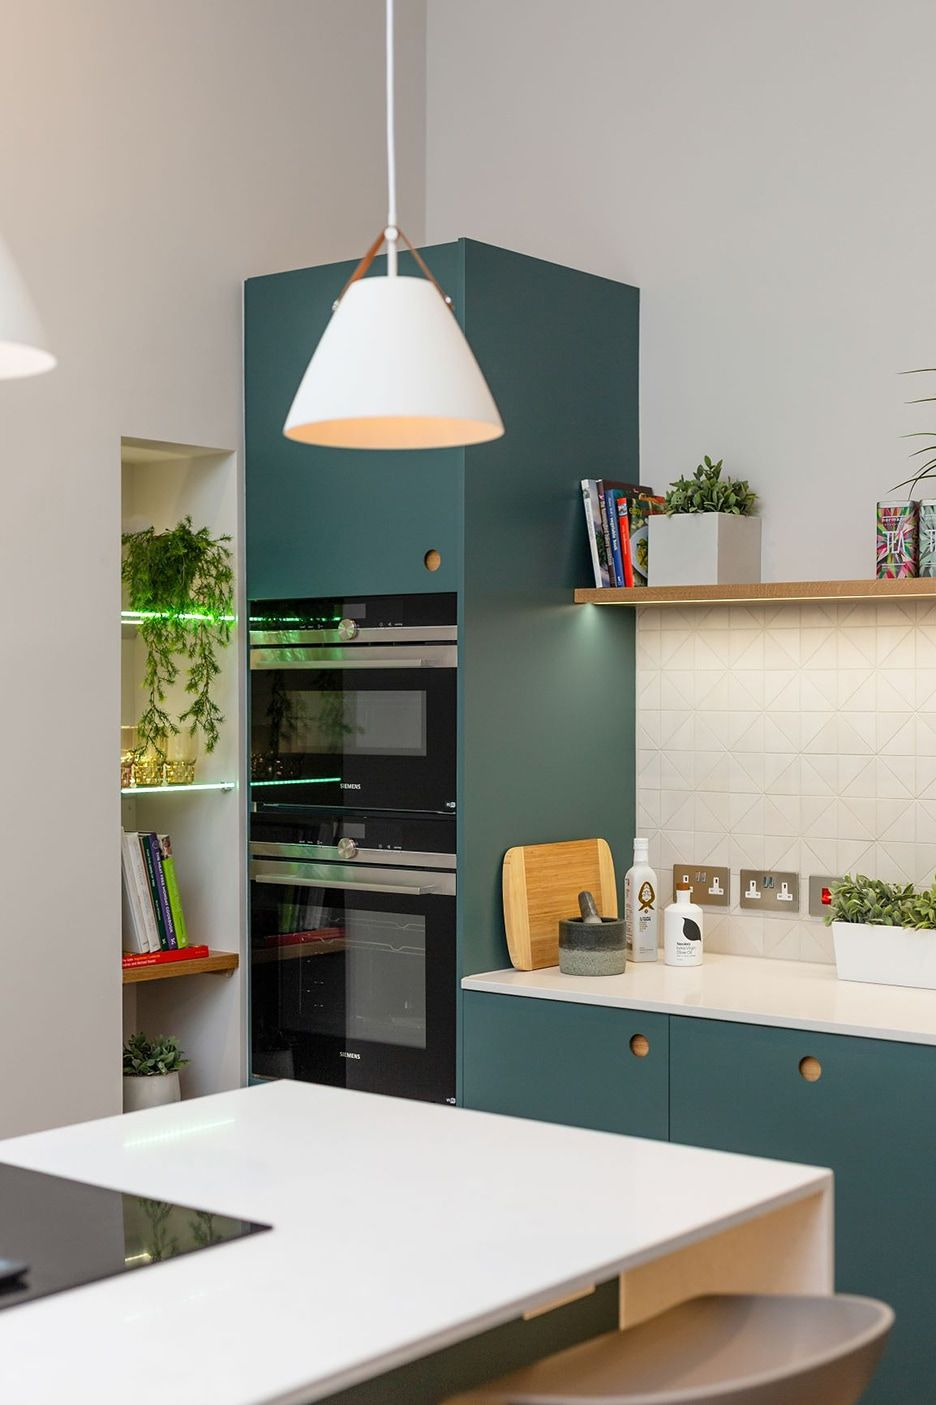 The Top Kitchen Cabinet Brands According To Your Style In 2020 Top Kitchen Cabinets Kitchen Cabinets Brands Kitchen Tops